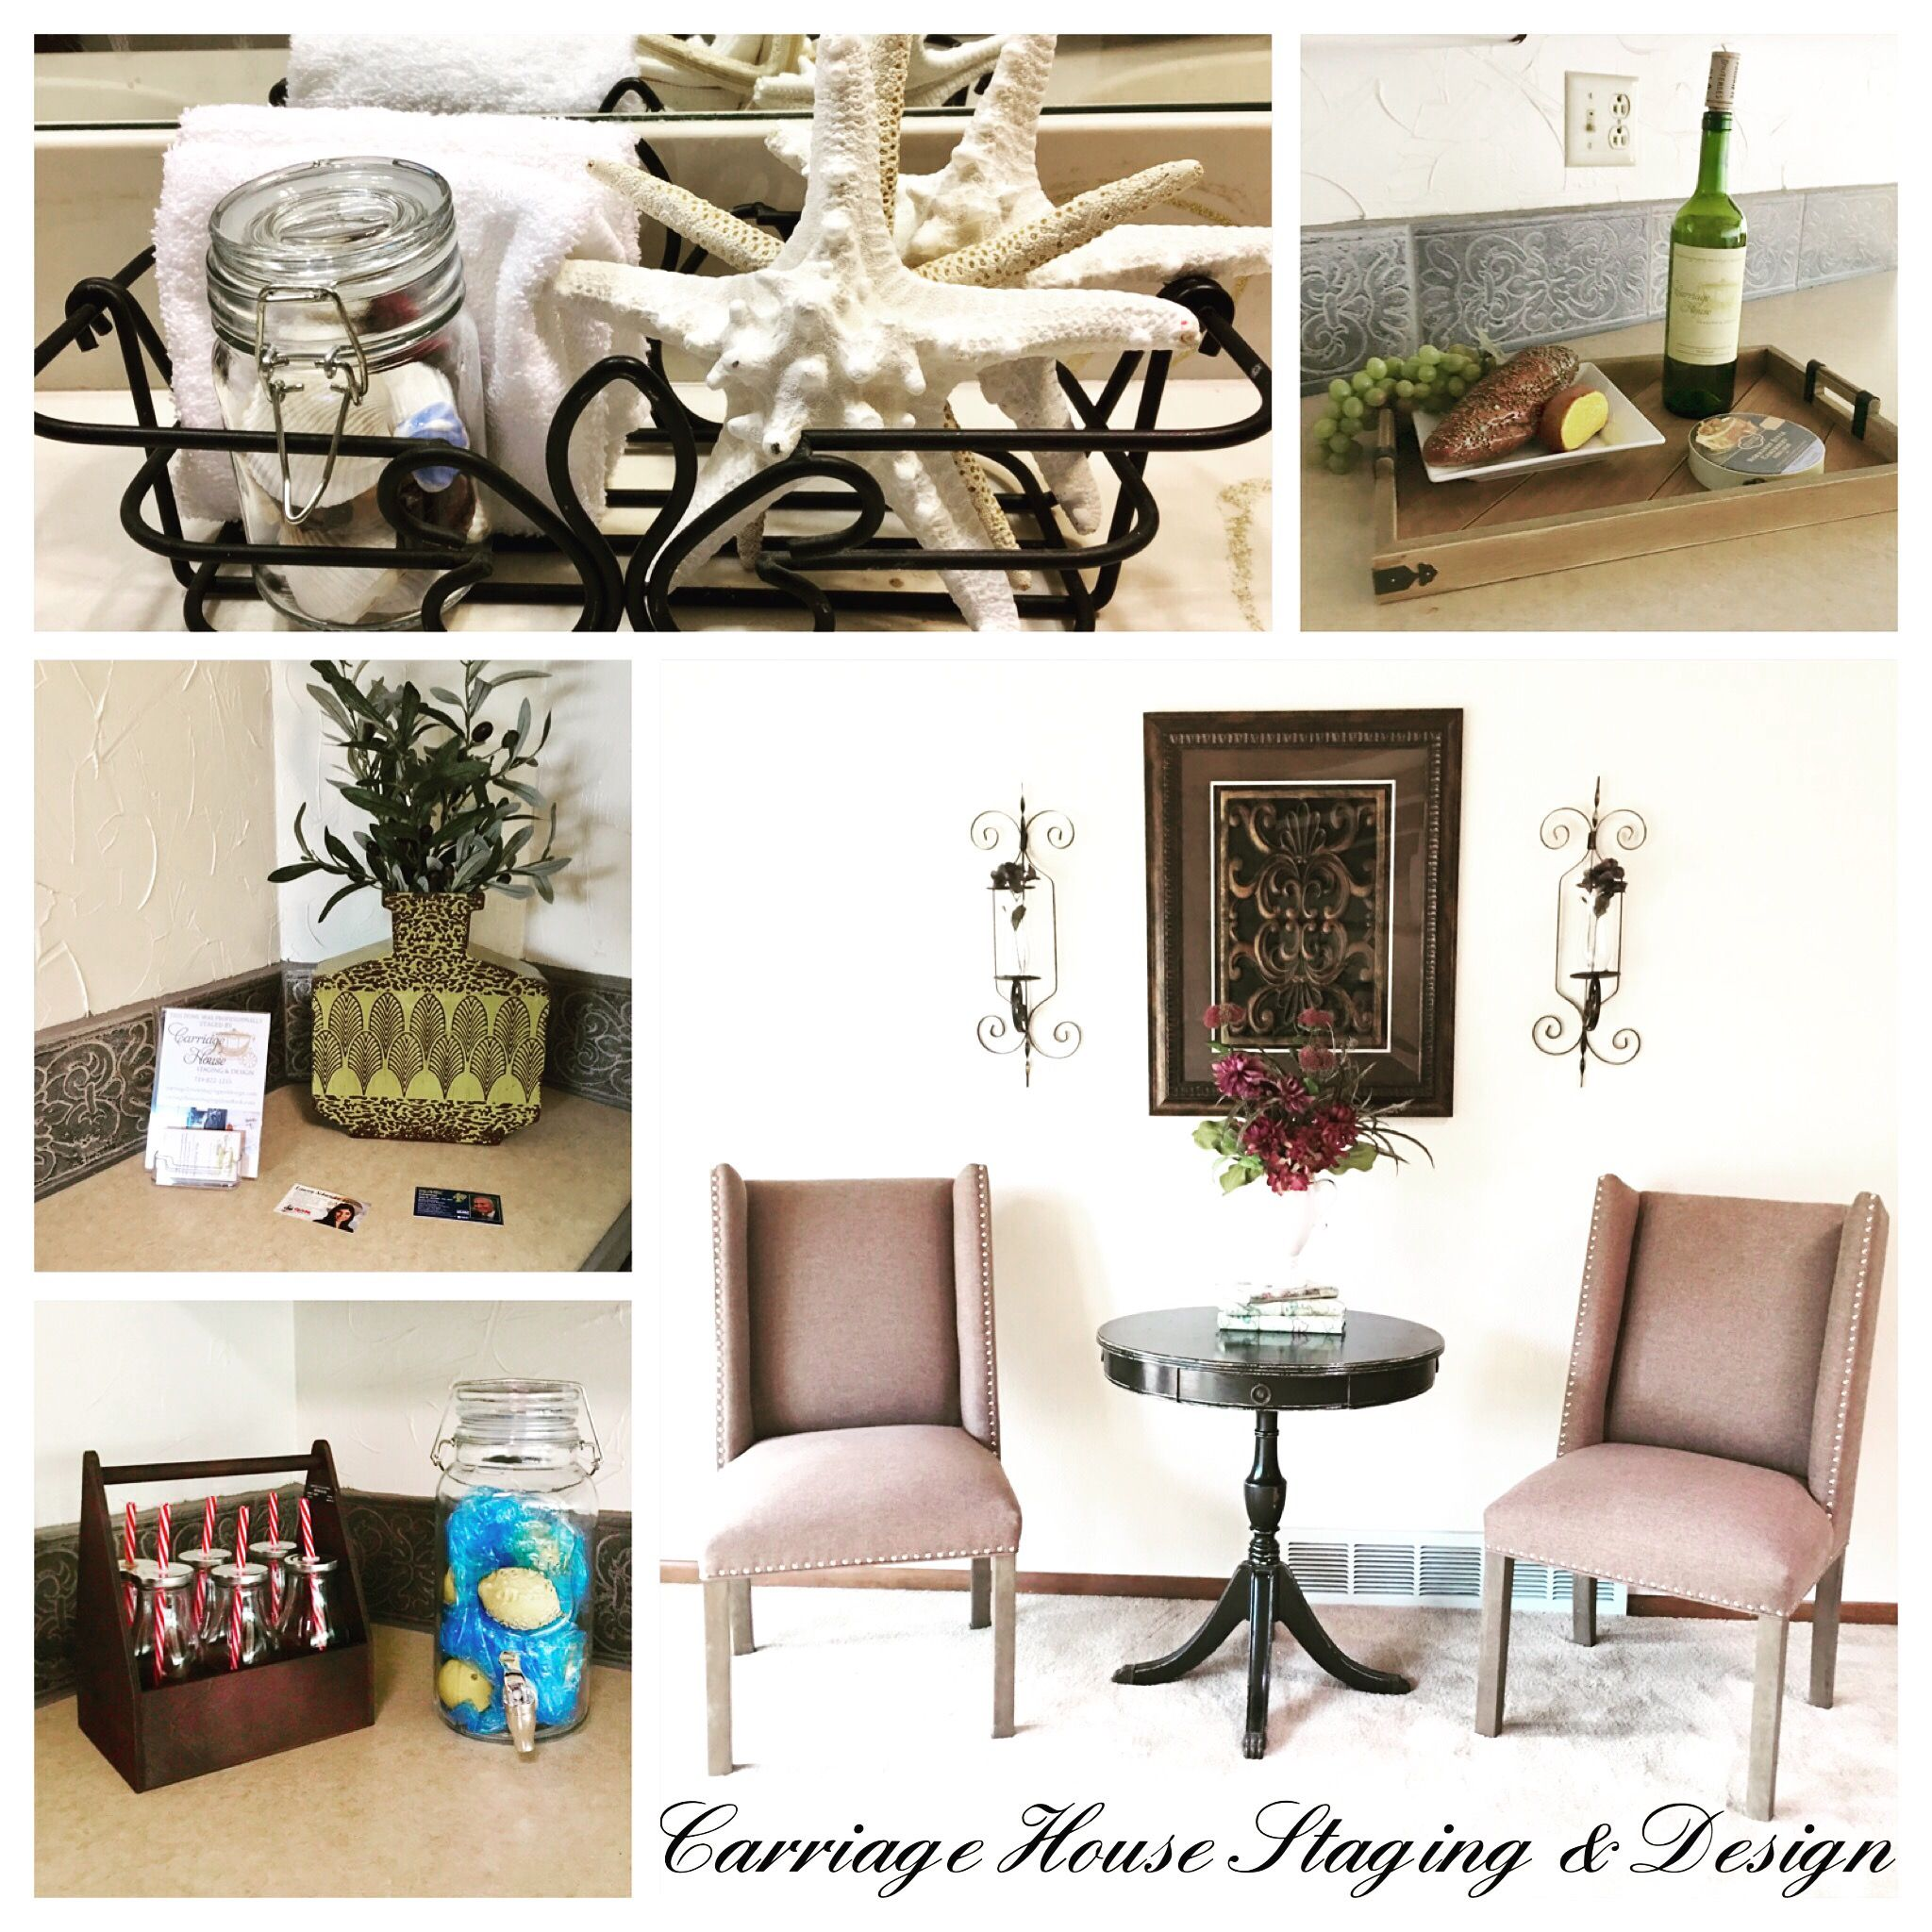 Home Staging Gallery: Home Decor, Home Staging, Design